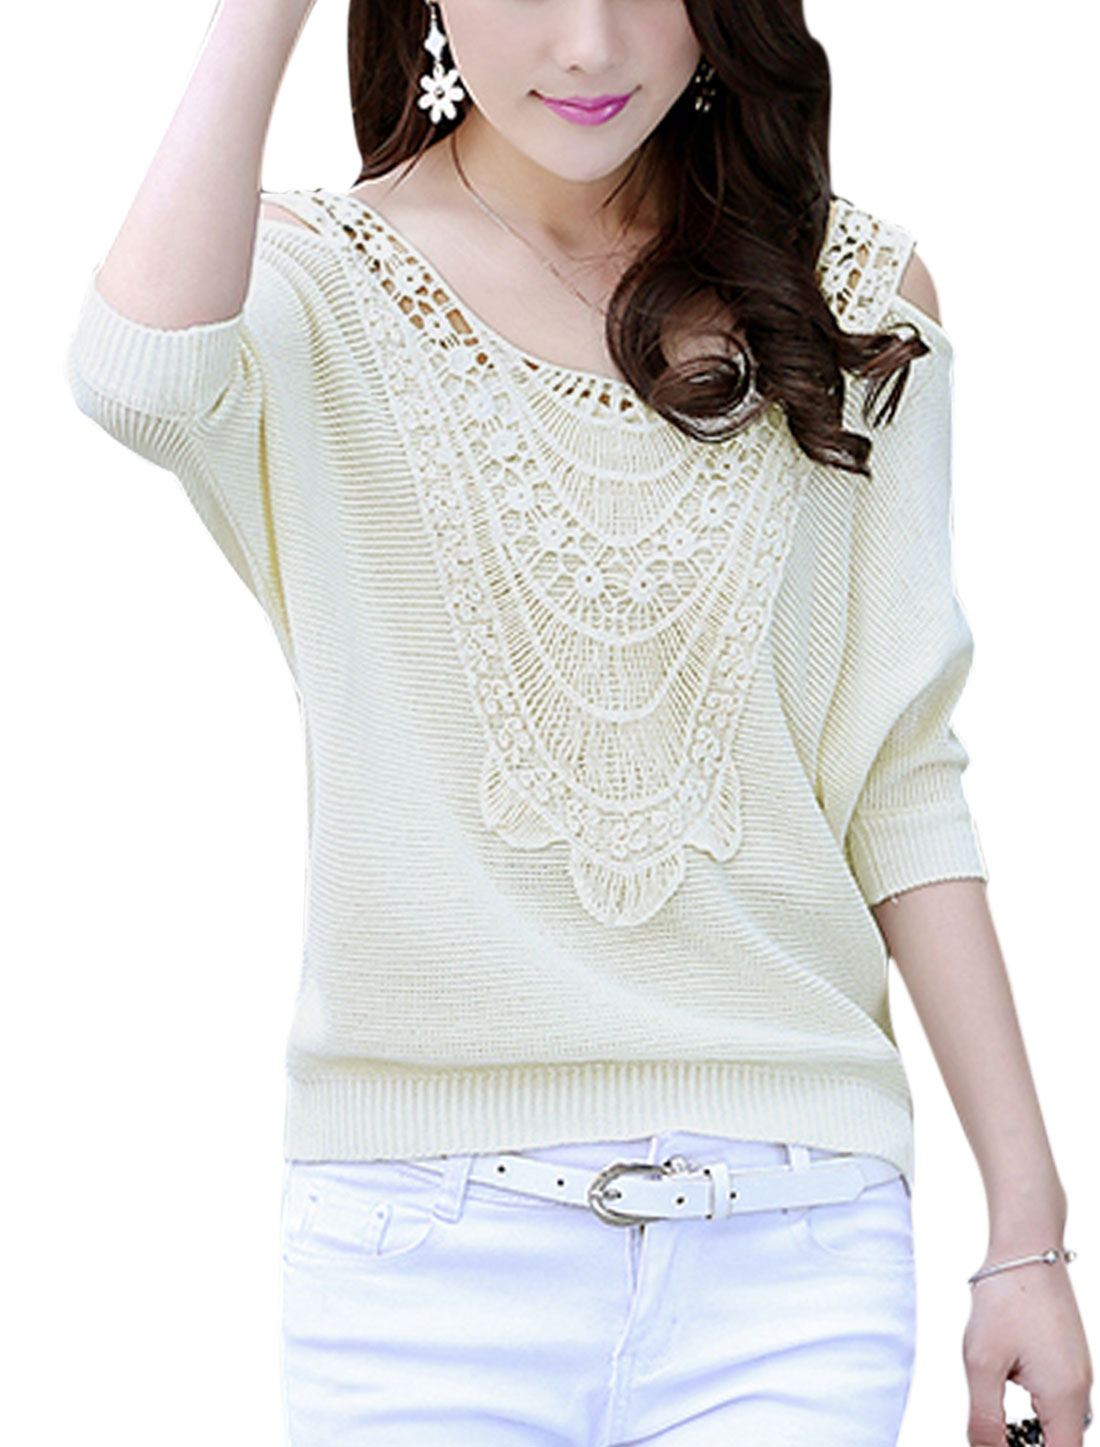 Women Crochet Panel Cut Out Shoulder Batwing Sleeve Knit Shirt Beige L